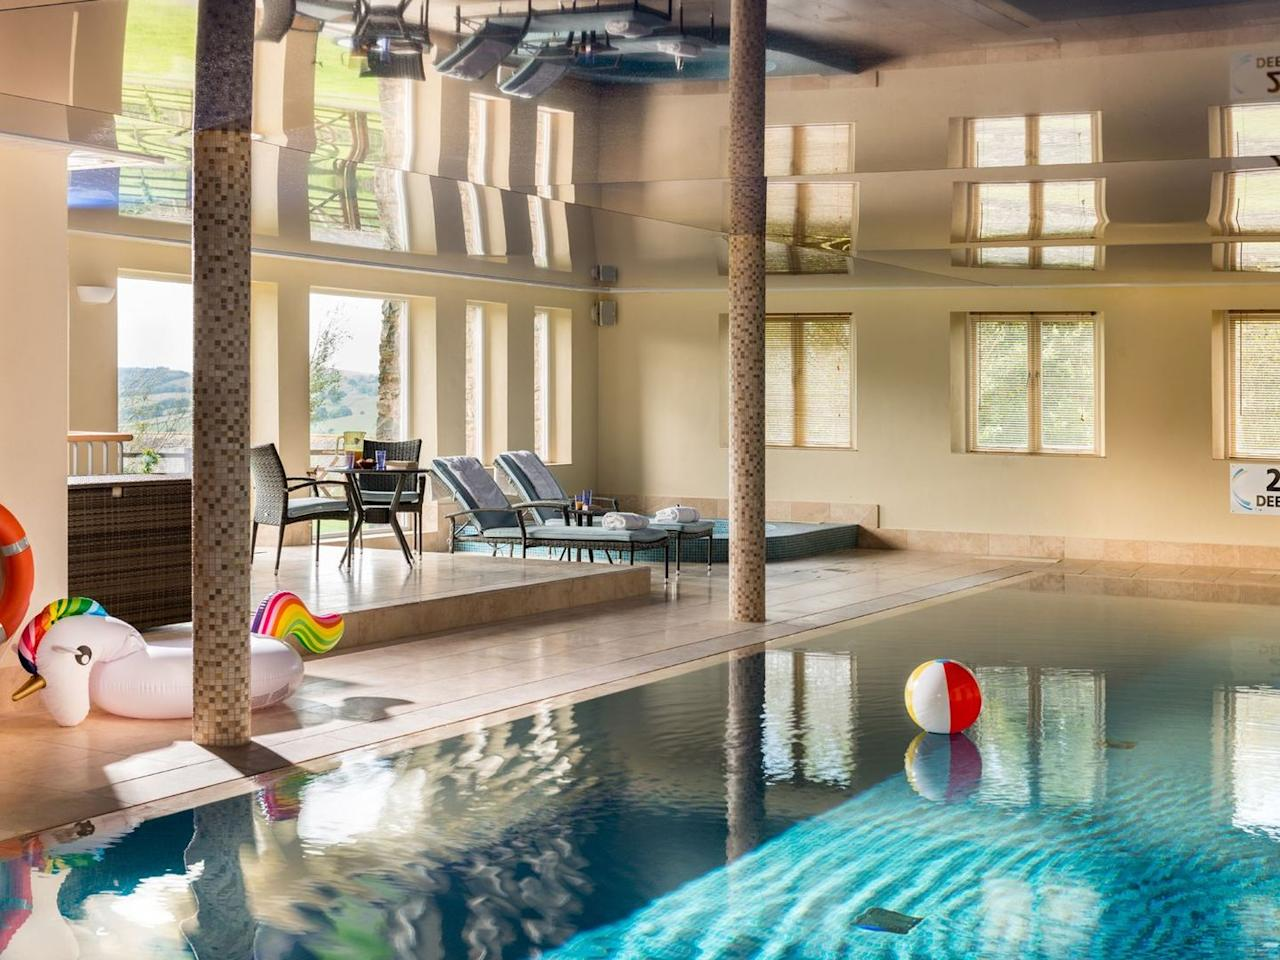 "<p>For a gorgeous cottage with a pool inside, this farmhouse has its own leisure centre so you can finally get <a href=""https://www.womenshealthmag.com/uk/fitness/workouts/a707720/gym-workout/"" target=""_blank"">the gym</a> all to yourself! The entire lower ground floor consists of the 15-metre heated swimming pool, a separate steam room and sauna, a built-in sunken 7-seater Jacuzzi and a spiral staircase that leads down to a small <a href=""https://www.womenshealthmag.com/uk/fitness/a30762241/kate-hudson-pilates-workout/"" target=""_blank"">yoga and Pilates</a> area. You'll want to click through the photos of the rest of the house too - seriously impressive!</p><p><strong>Sleeps:</strong> 18</p><p><strong>Pets: </strong>No</p><p><strong>Bring:</strong> All your workout gear to make the most of having a whole leisure centre to yourself. </p><p><strong>Price: </strong>3 nights from £3,442</p><p><strong>Available from: </strong><a href=""https://go.redirectingat.com?id=127X1599956&url=https%3A%2F%2Fwww.sykescottages.co.uk%2Fcottage%2FLake-District-Cumbria-The-Lake-District-Sedbergh%2FHigh-Fellside-Hall-947265.html&sref=https%3A%2F%2Fwww.womenshealthmag.com%2Fuk%2Ffitness%2Ffitness-holidays%2Fg33559308%2Fcottages-with-pools%2F"" target=""_blank"">Sykes Holiday Cottages</a></p>"